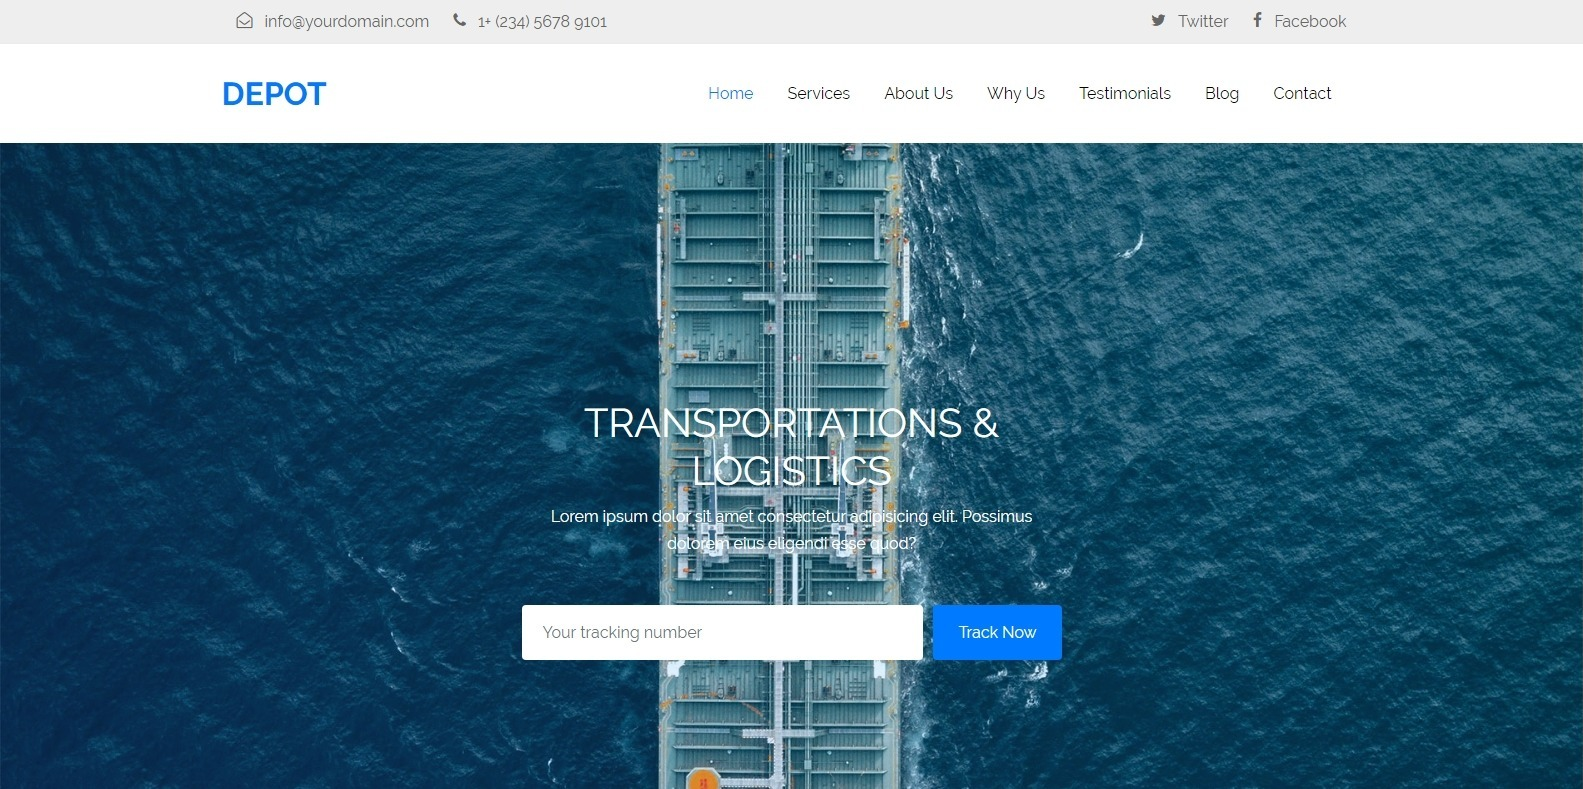 depot-transportation-website-template